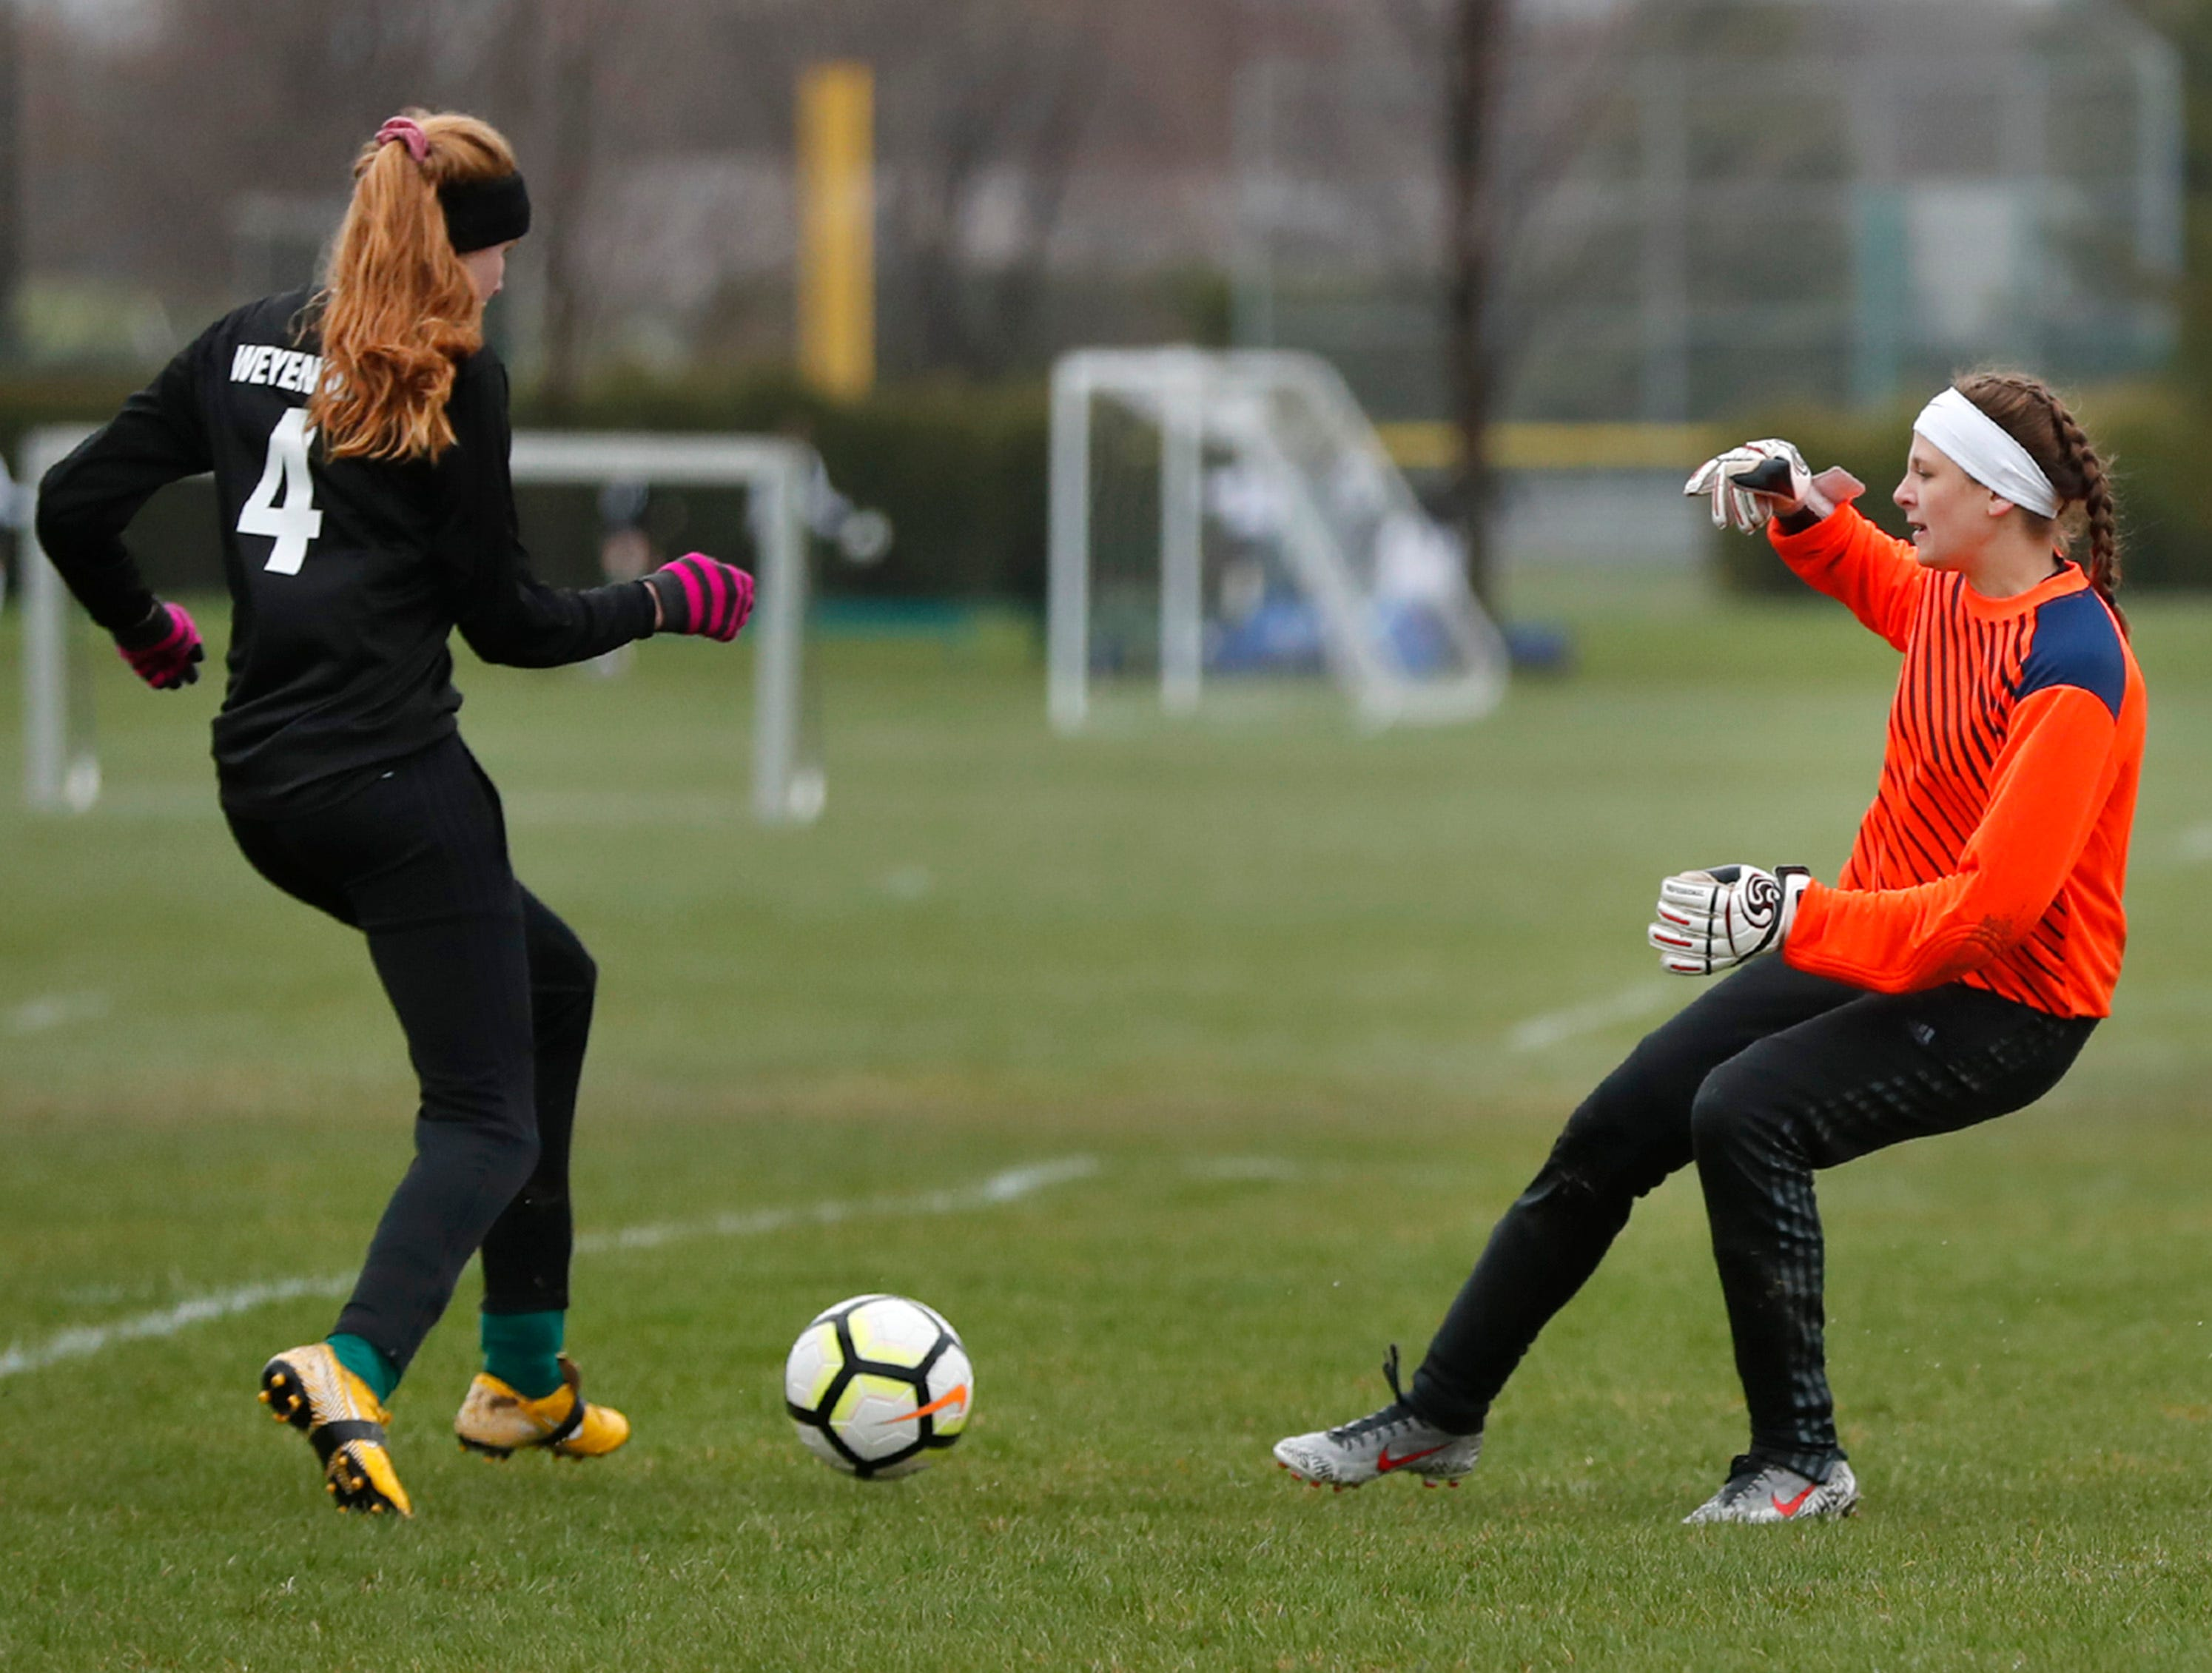 Freedom High School's Hailey Weyenberg dribbles the ball around Waupaca High School's goalkeeper Seattle Lettau for a goal Monday, April 29, 2019, in Freedom, Wis. Danny Damiani/USA TODAY NETWORK-Wisconsin